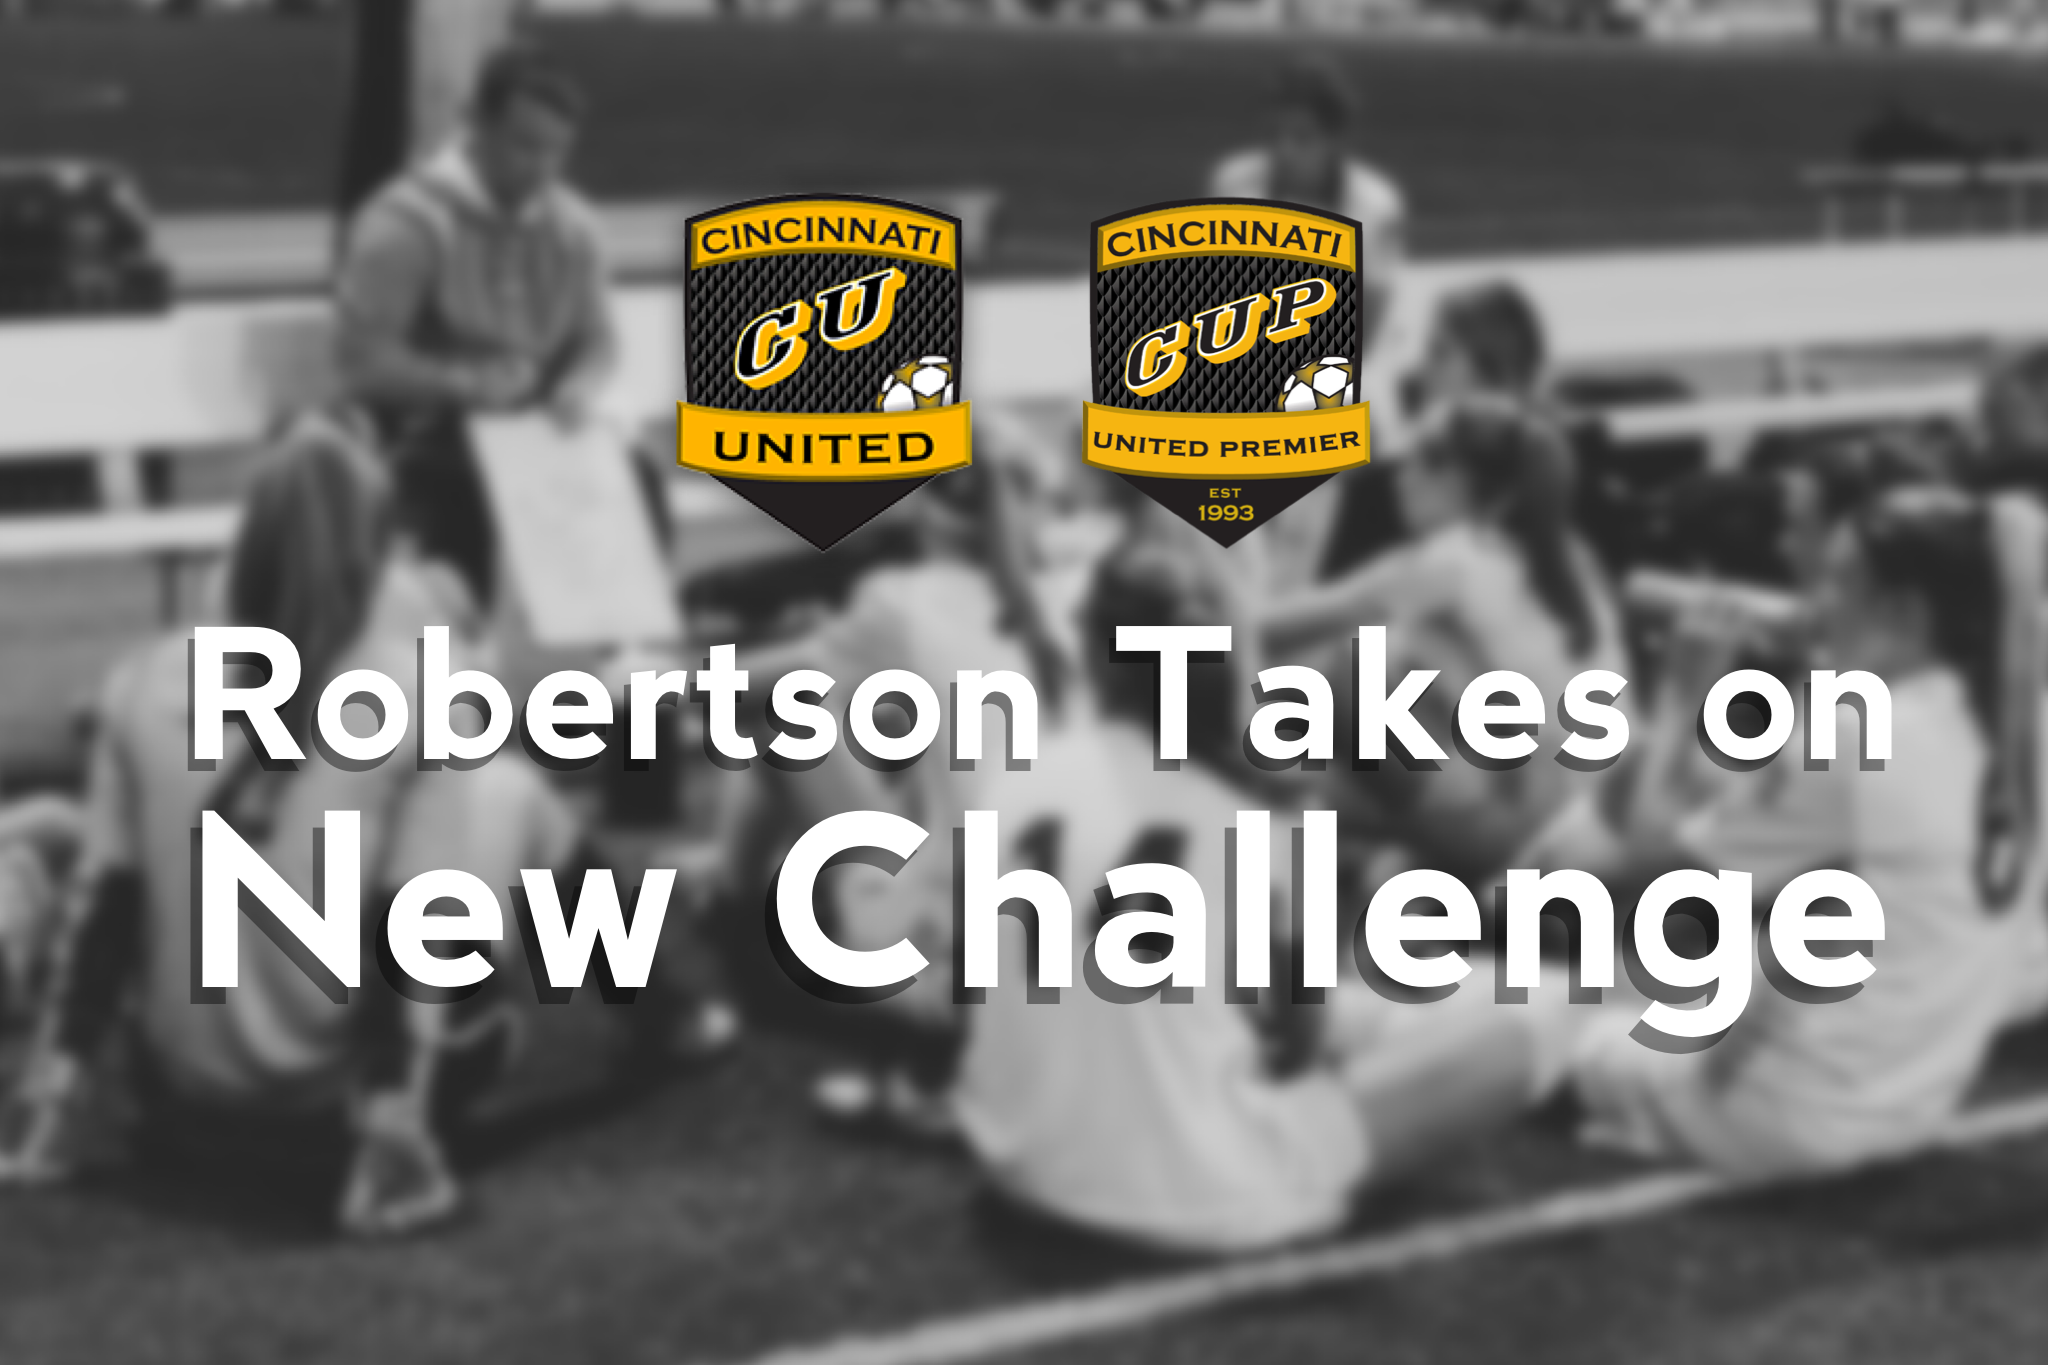 Robertson Takes On New Challenge